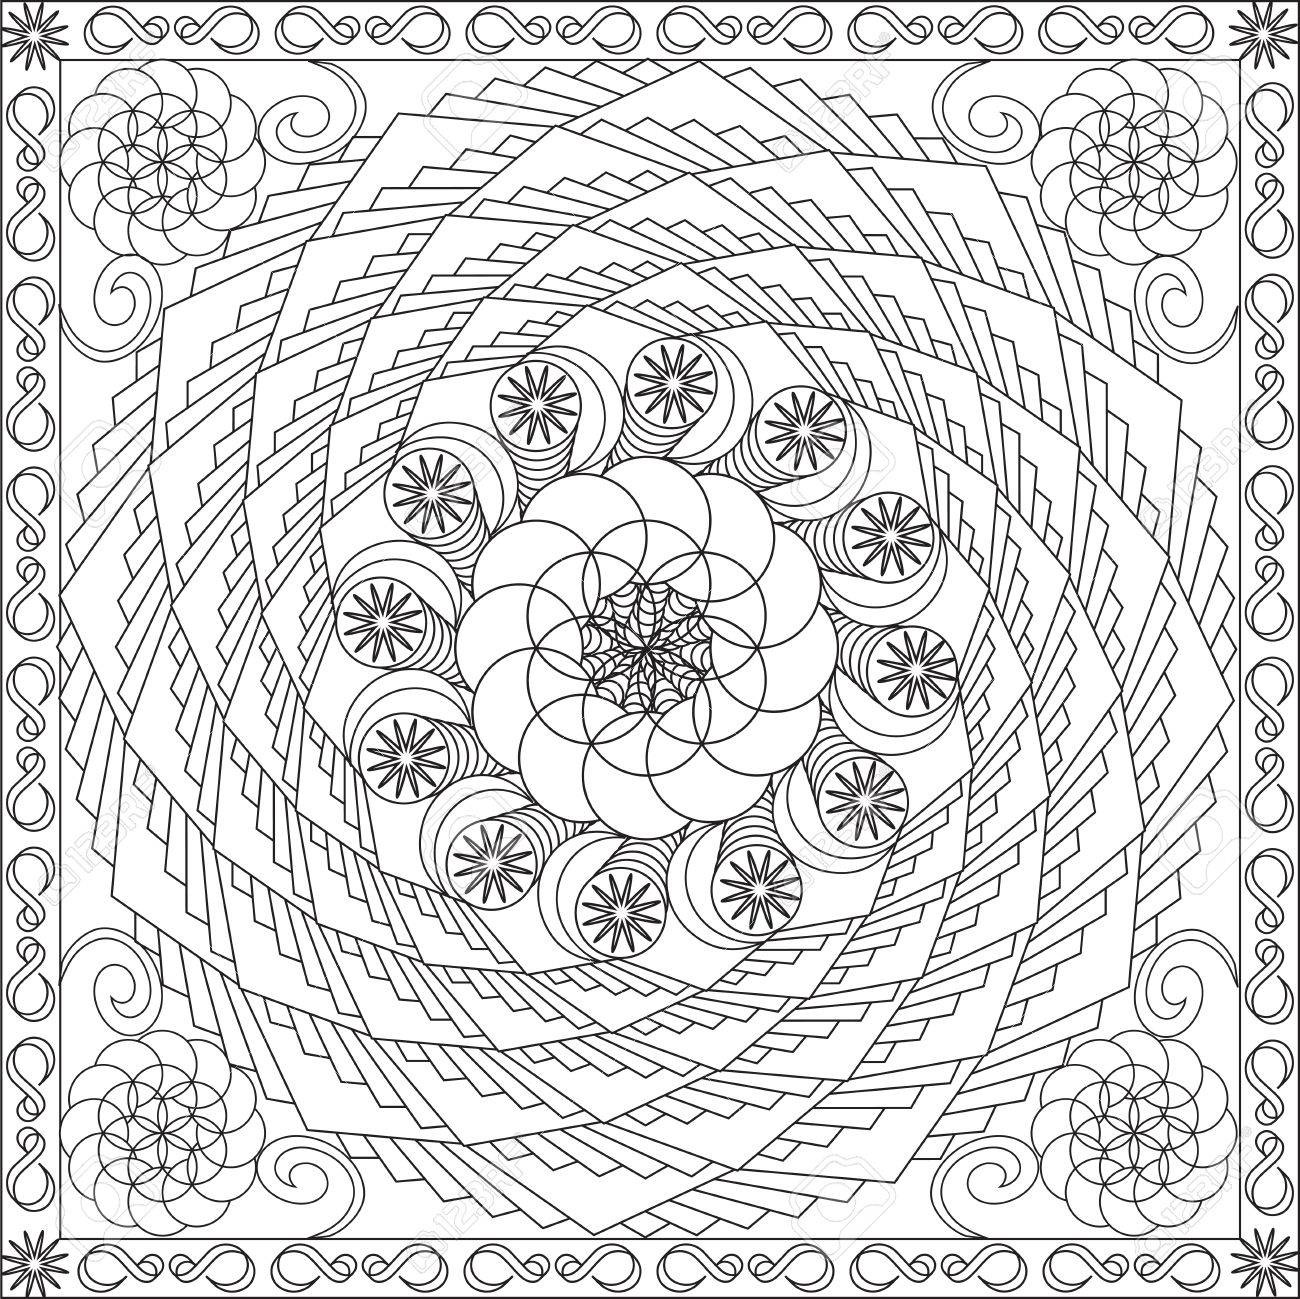 Page Coloring Book For Adults Square Format Spiral Geometric Flower Design Vector Illustration Stock